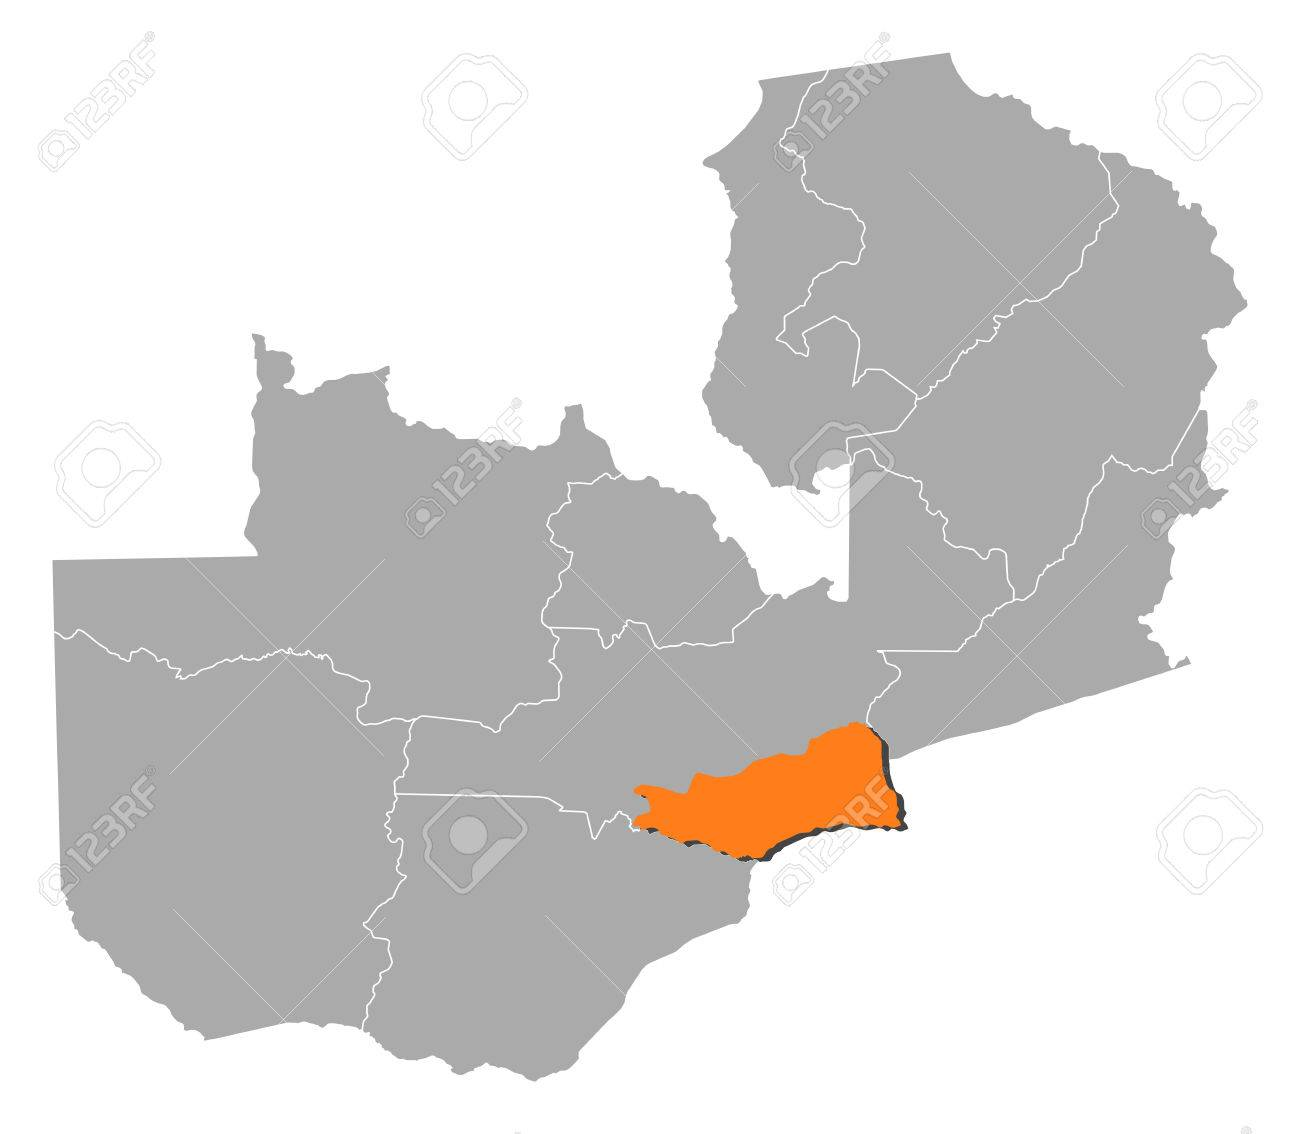 Map Of Zambia With The Provinces Lusaka Is Highlighted By Orange